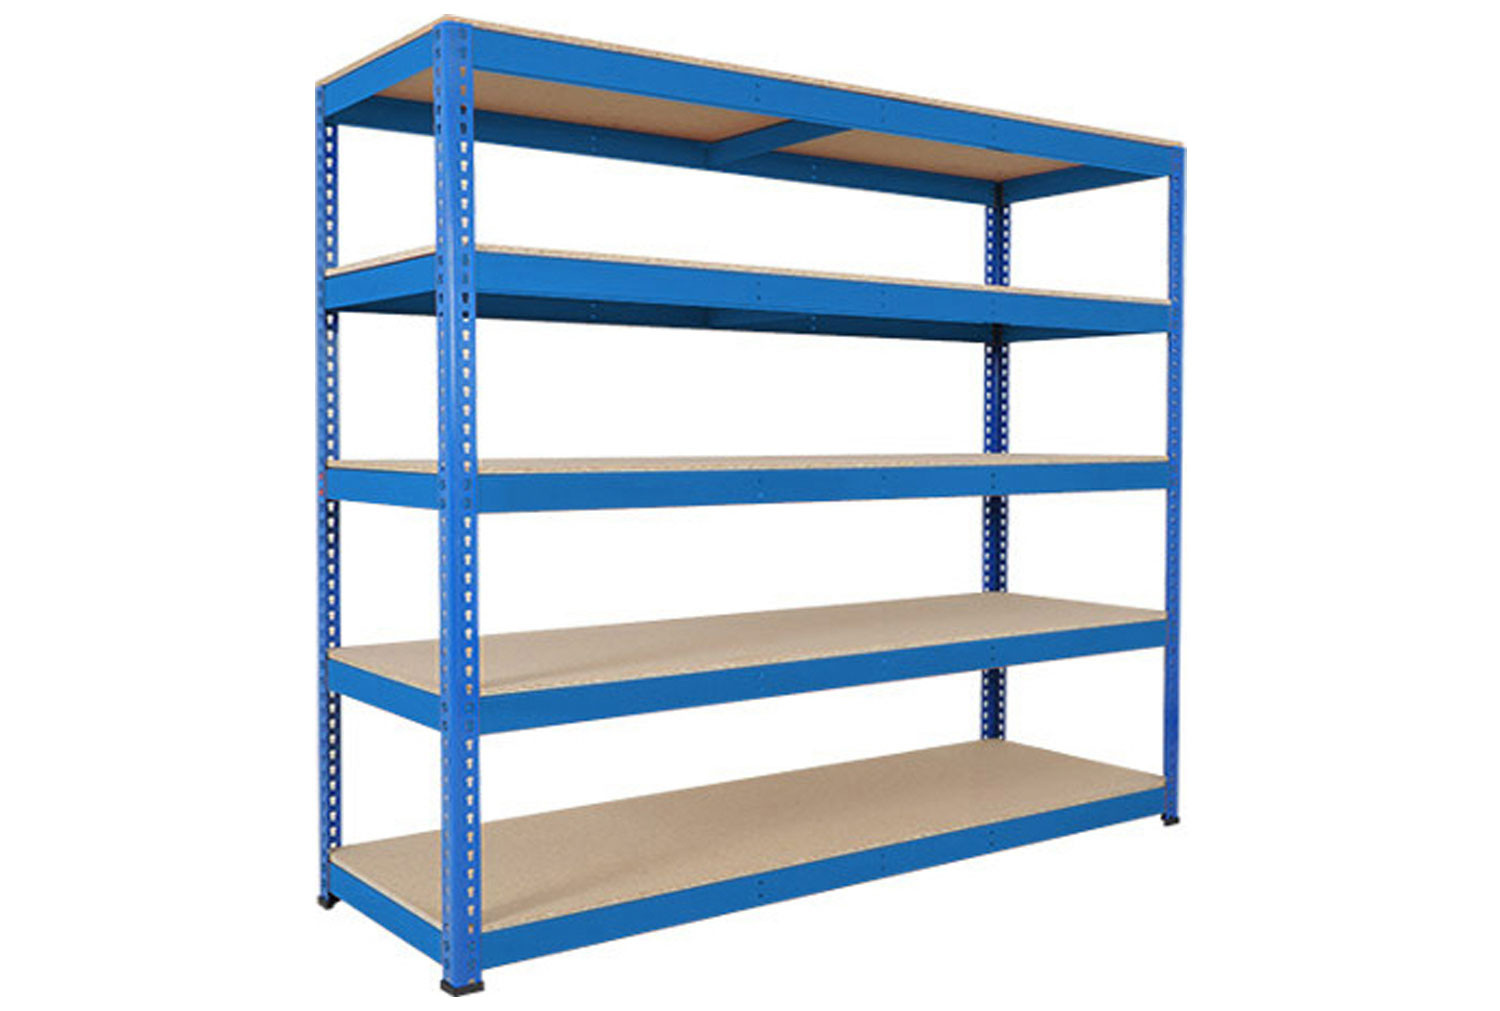 Rapid 1 Heavy Duty Shelving With 5 Chipboard Shelves 2440wx2440h (Blue)